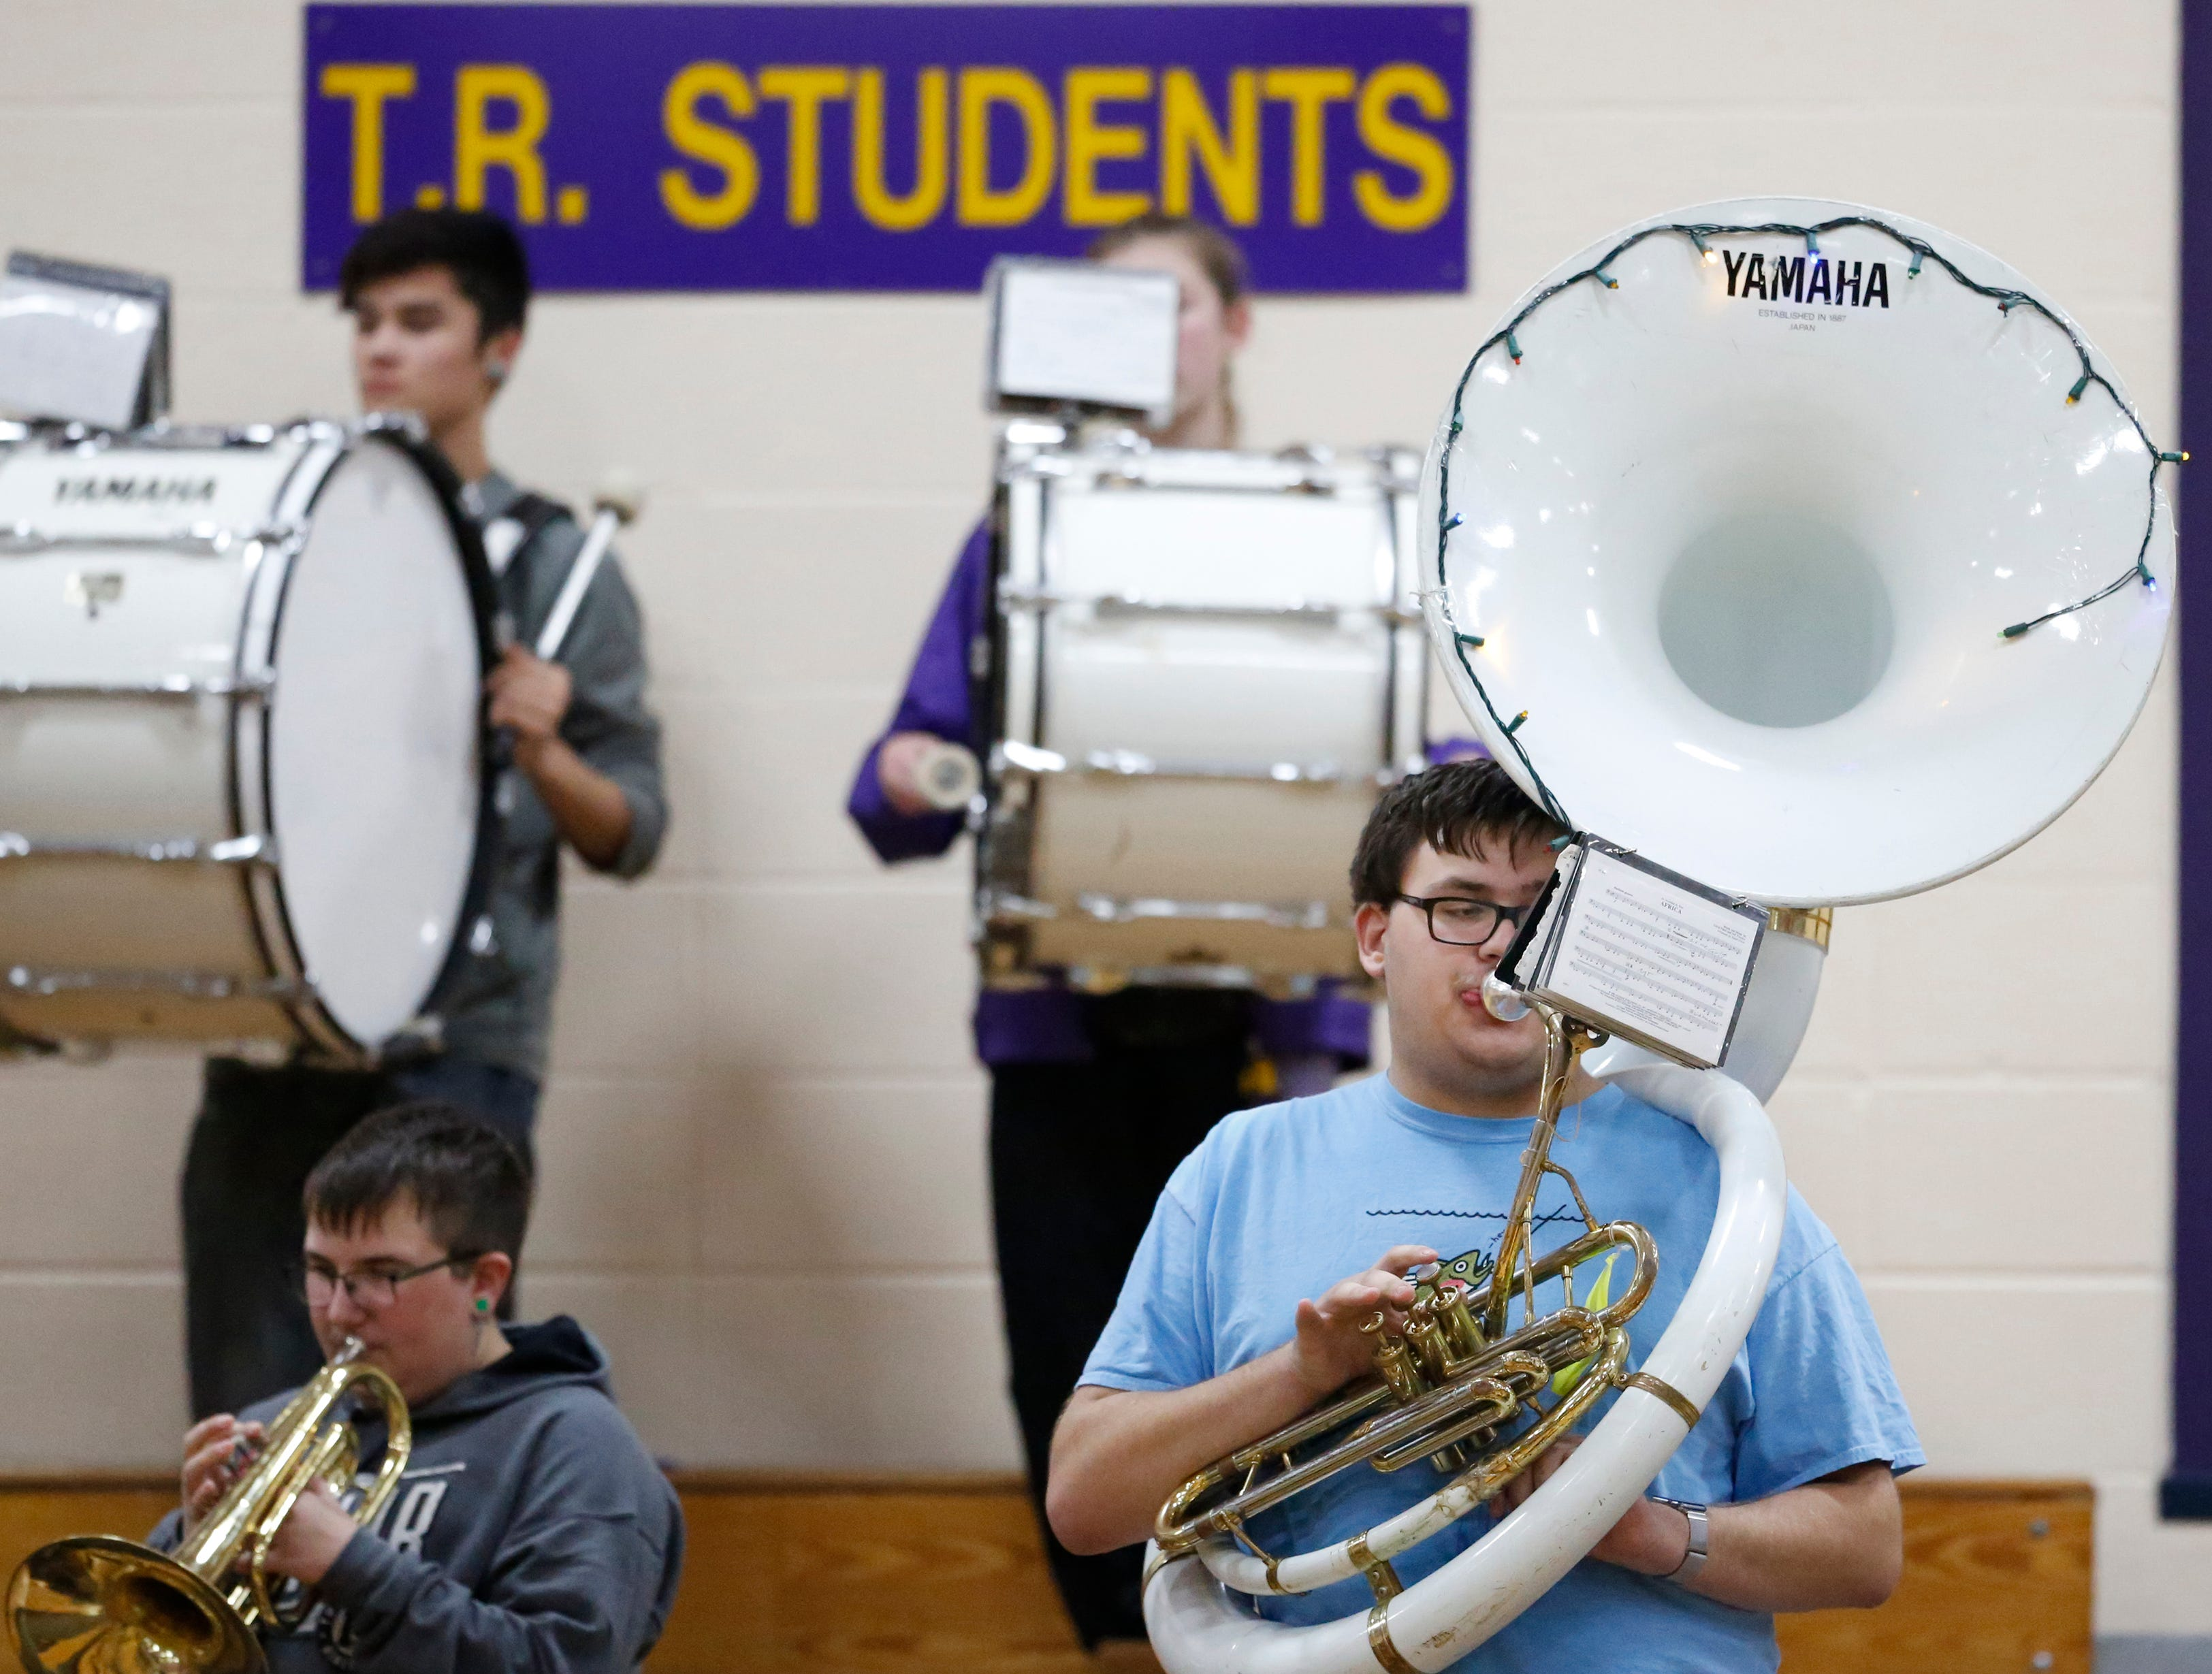 A Two Rivers tuba player gets festive by decorating his instrument with Christmas lights during a boys basketball game against Sheboygan Falls at Two Rivers High School Tuesday, December 4, 2018, in Two Rivers, Wis. Joshua Clark/USA TODAY NETWORK-Wisconsin